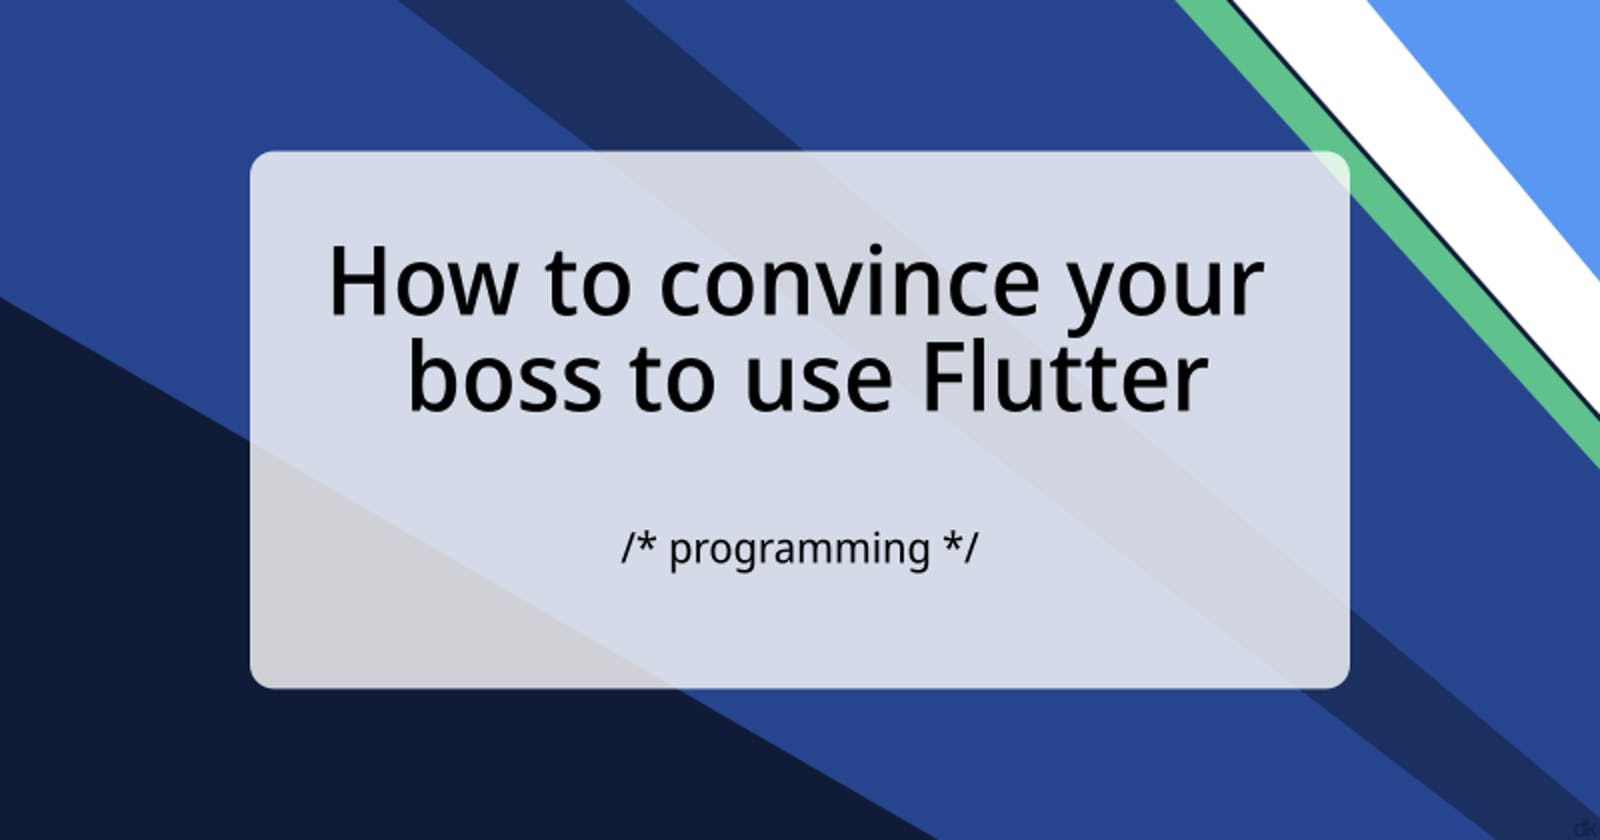 How to convince your boss to use Flutter